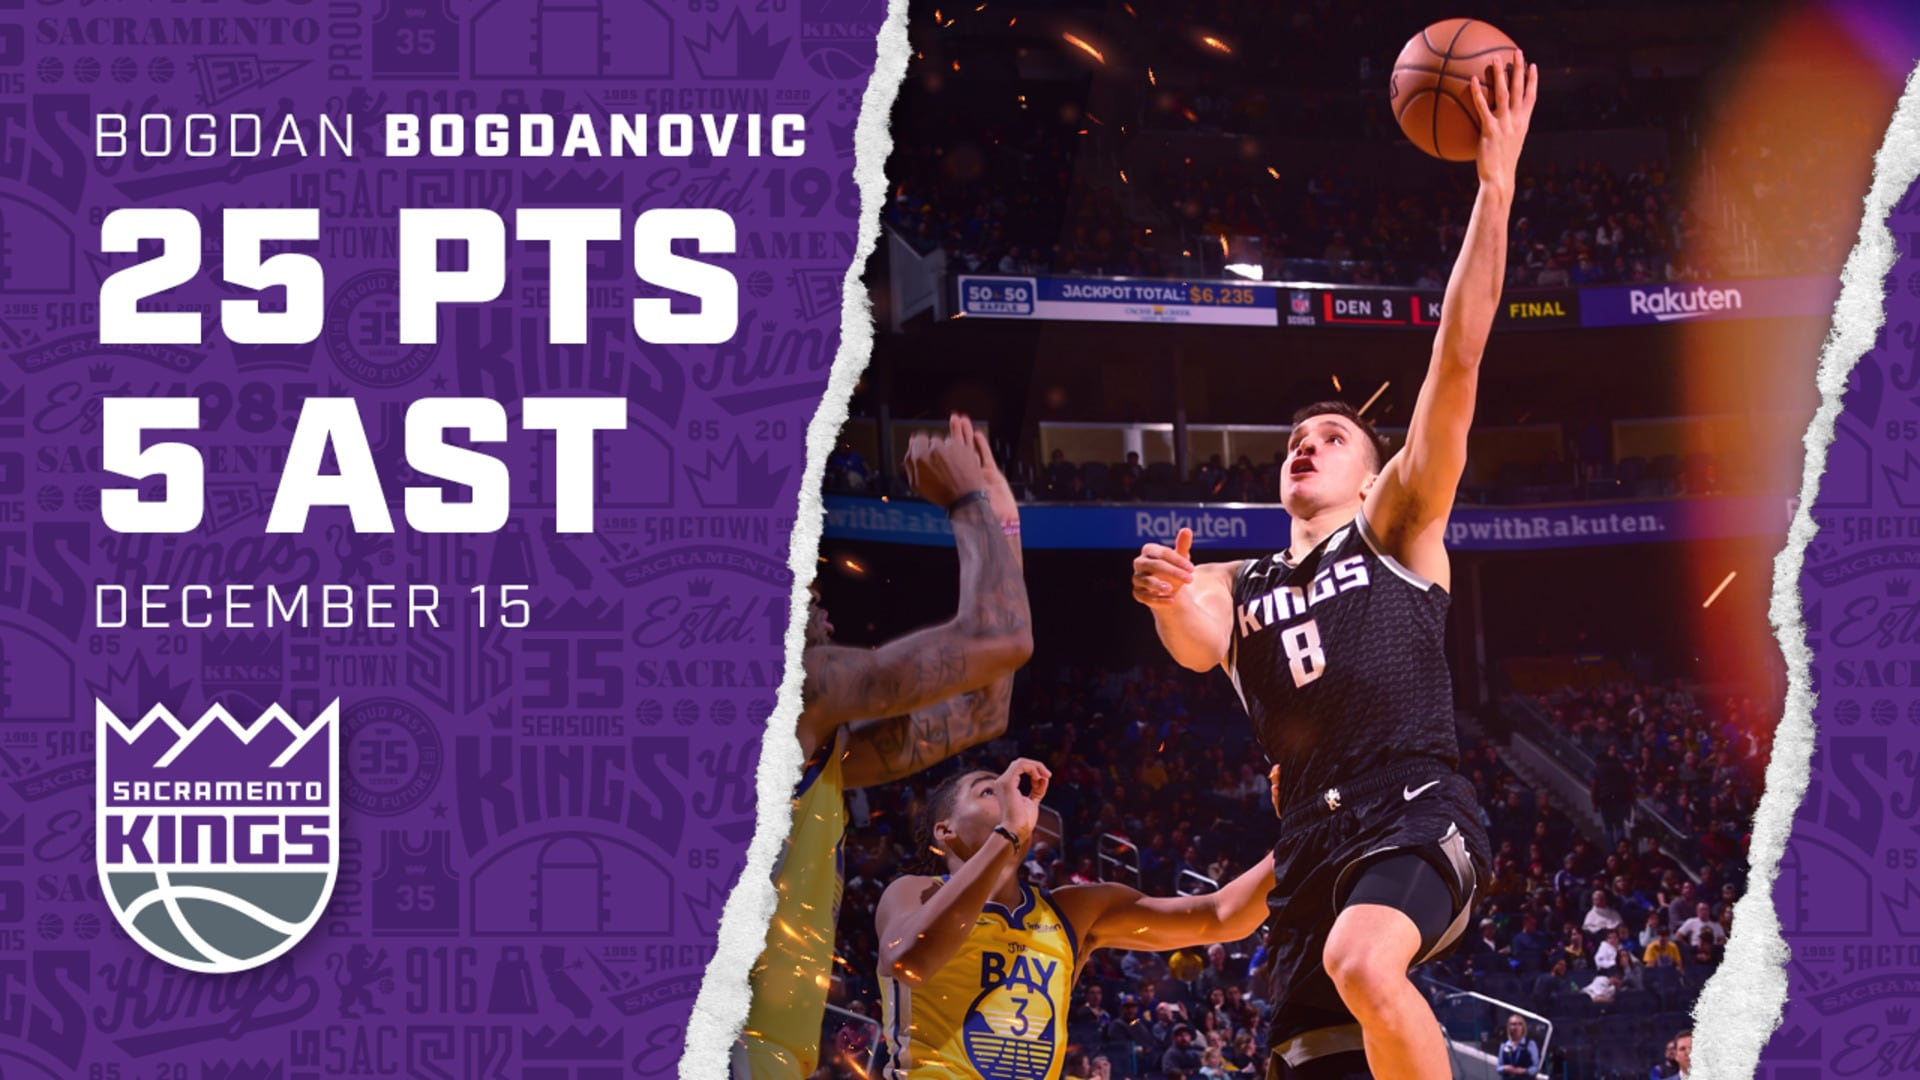 Bogi Racks Up a Game-High 25 PTS in Rout of Warriors